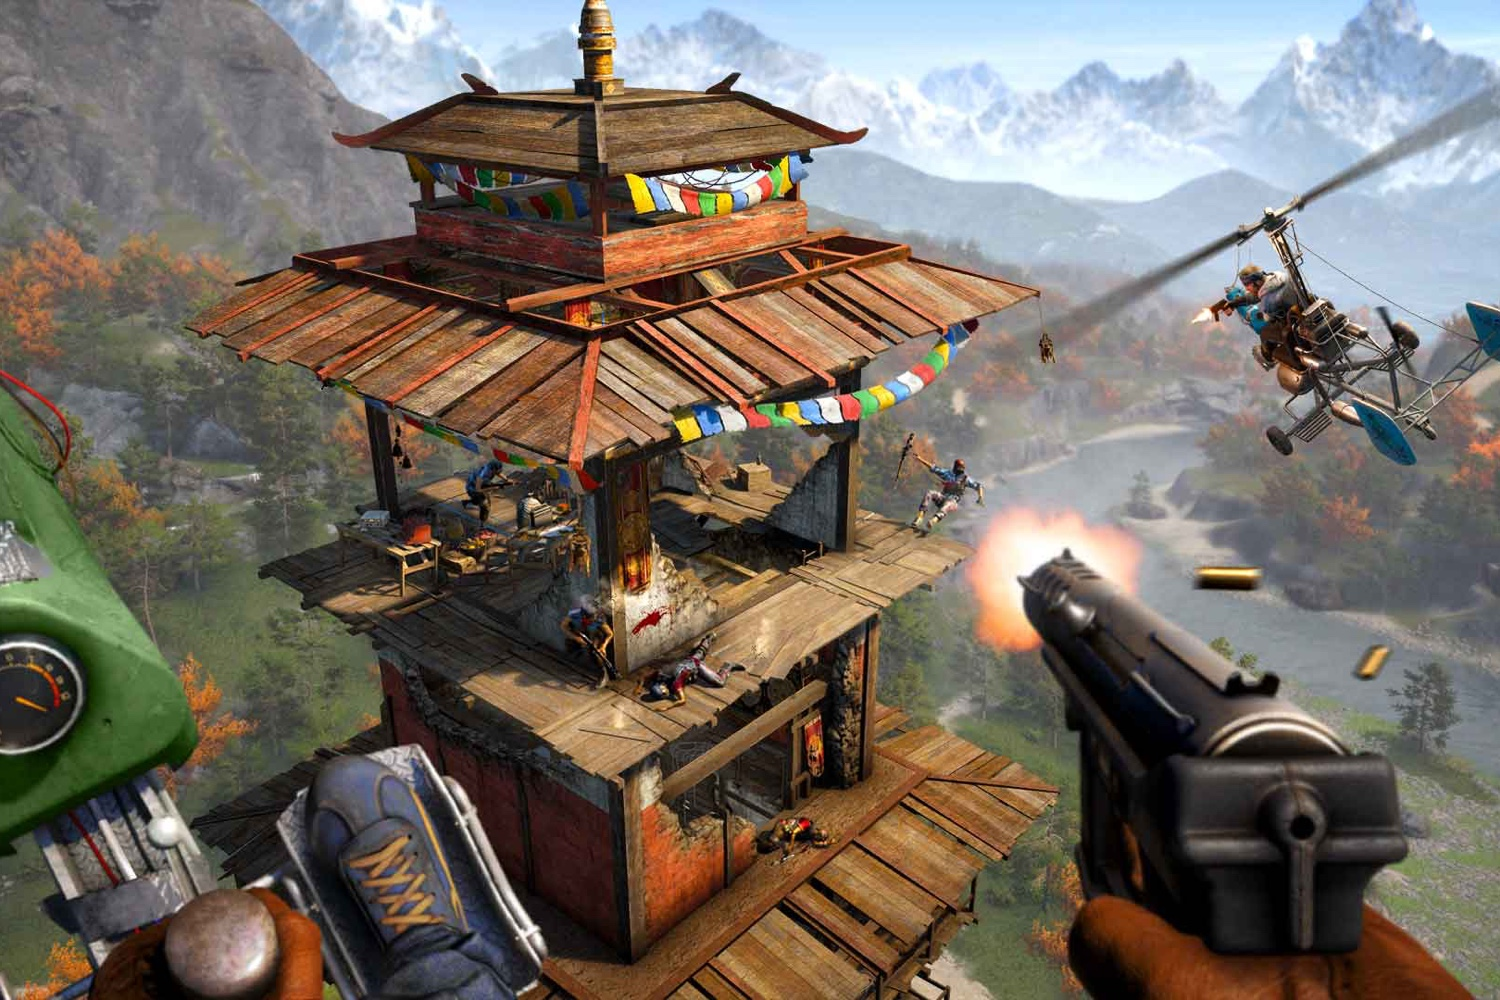 far cry 4 vs 5 map size